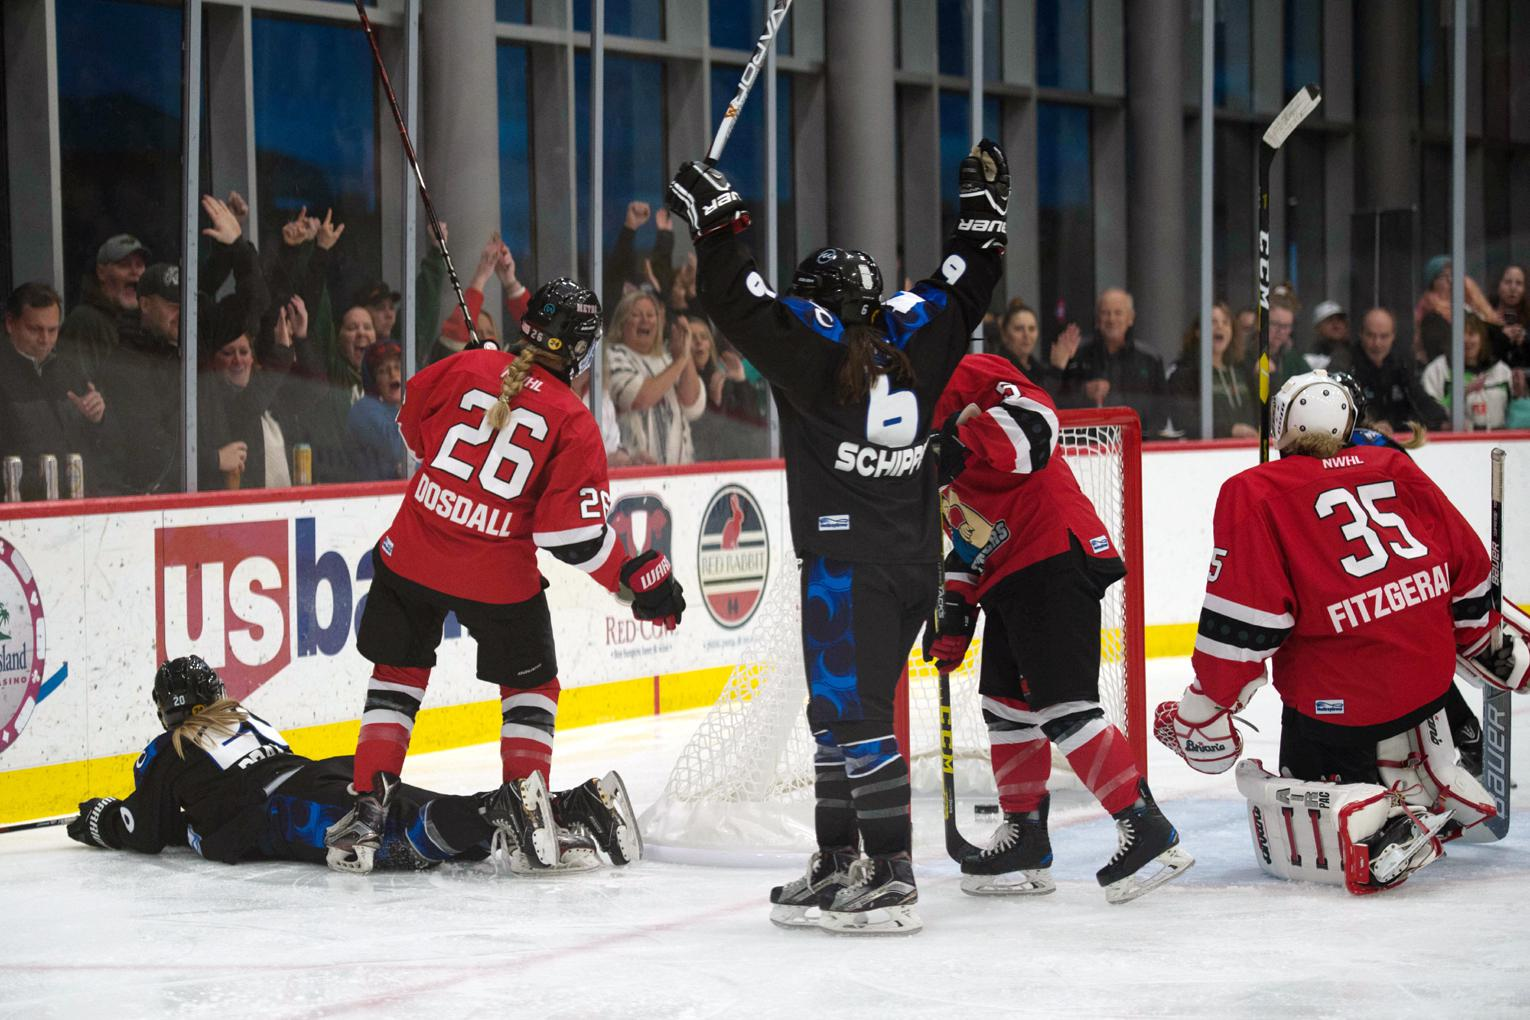 NWHL: Whitecaps Open Inaugural Season With Sweep Of Riveters